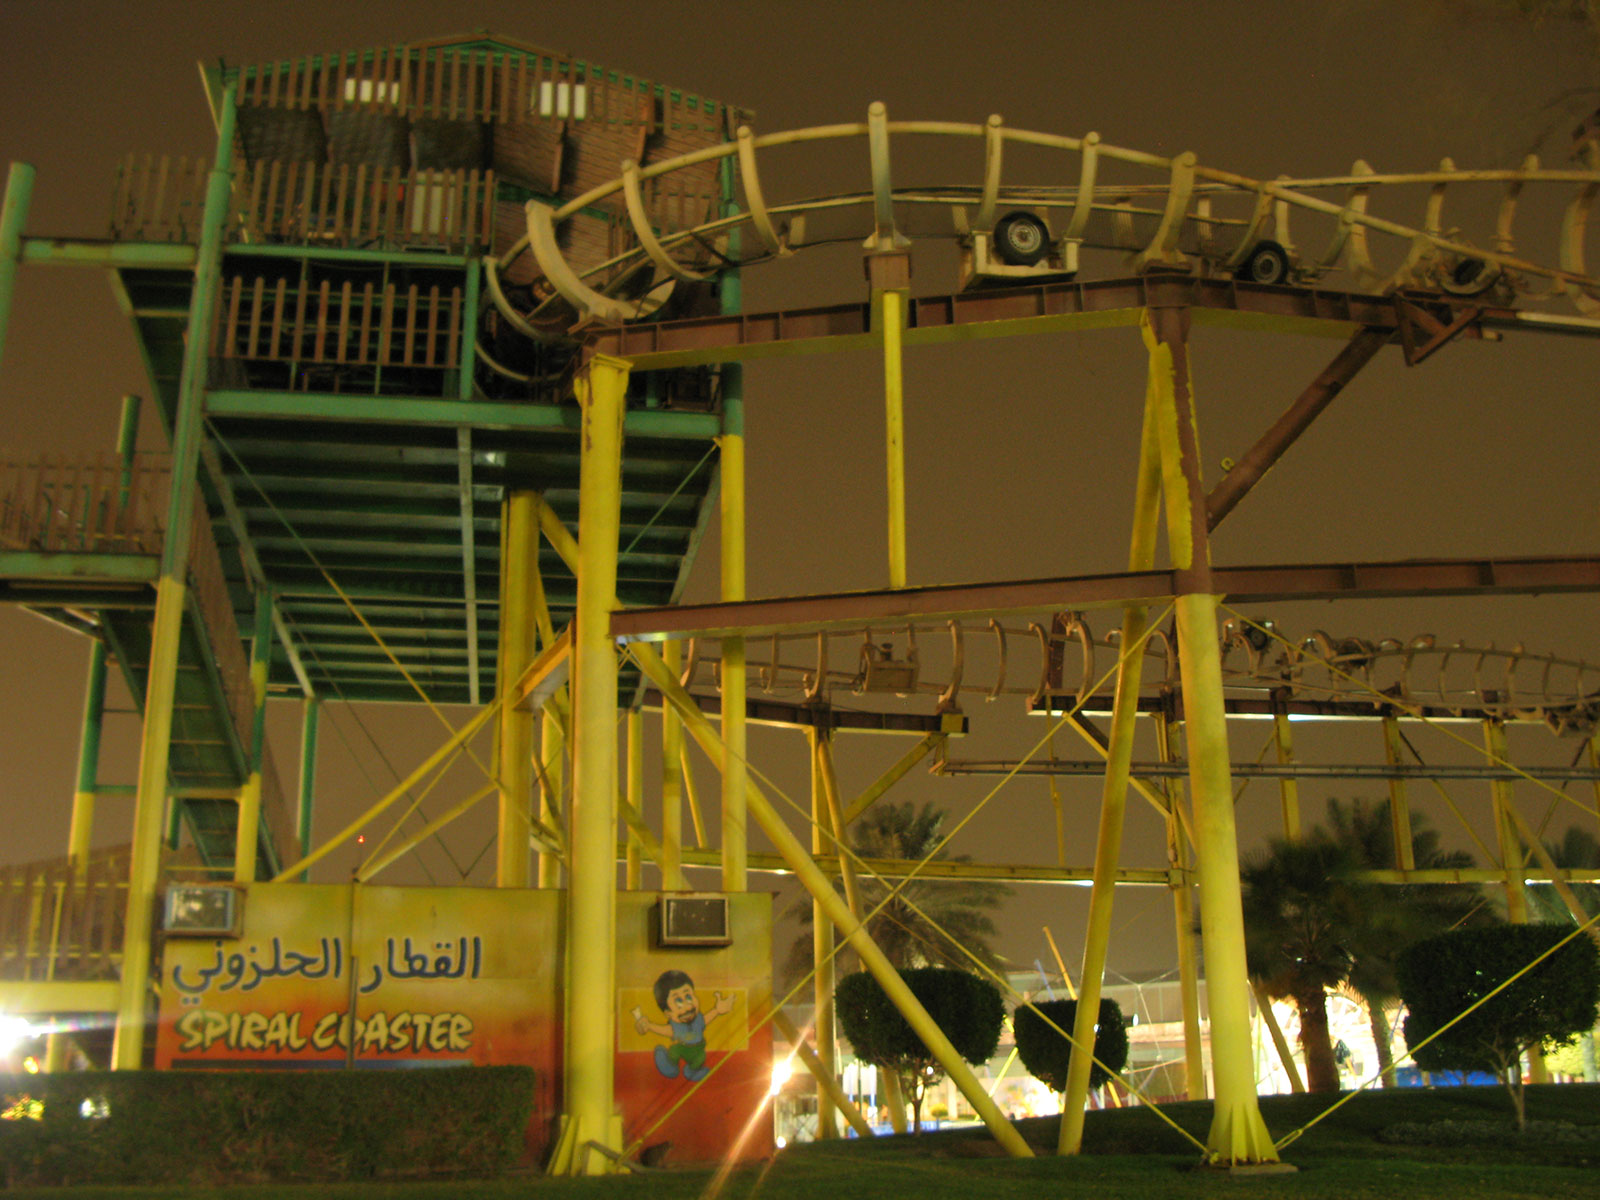 Shaab Leisure Park Kuwait City, Coaster Trips: 2007: Kuwait Entertainment City, Hawally Park, Al ...